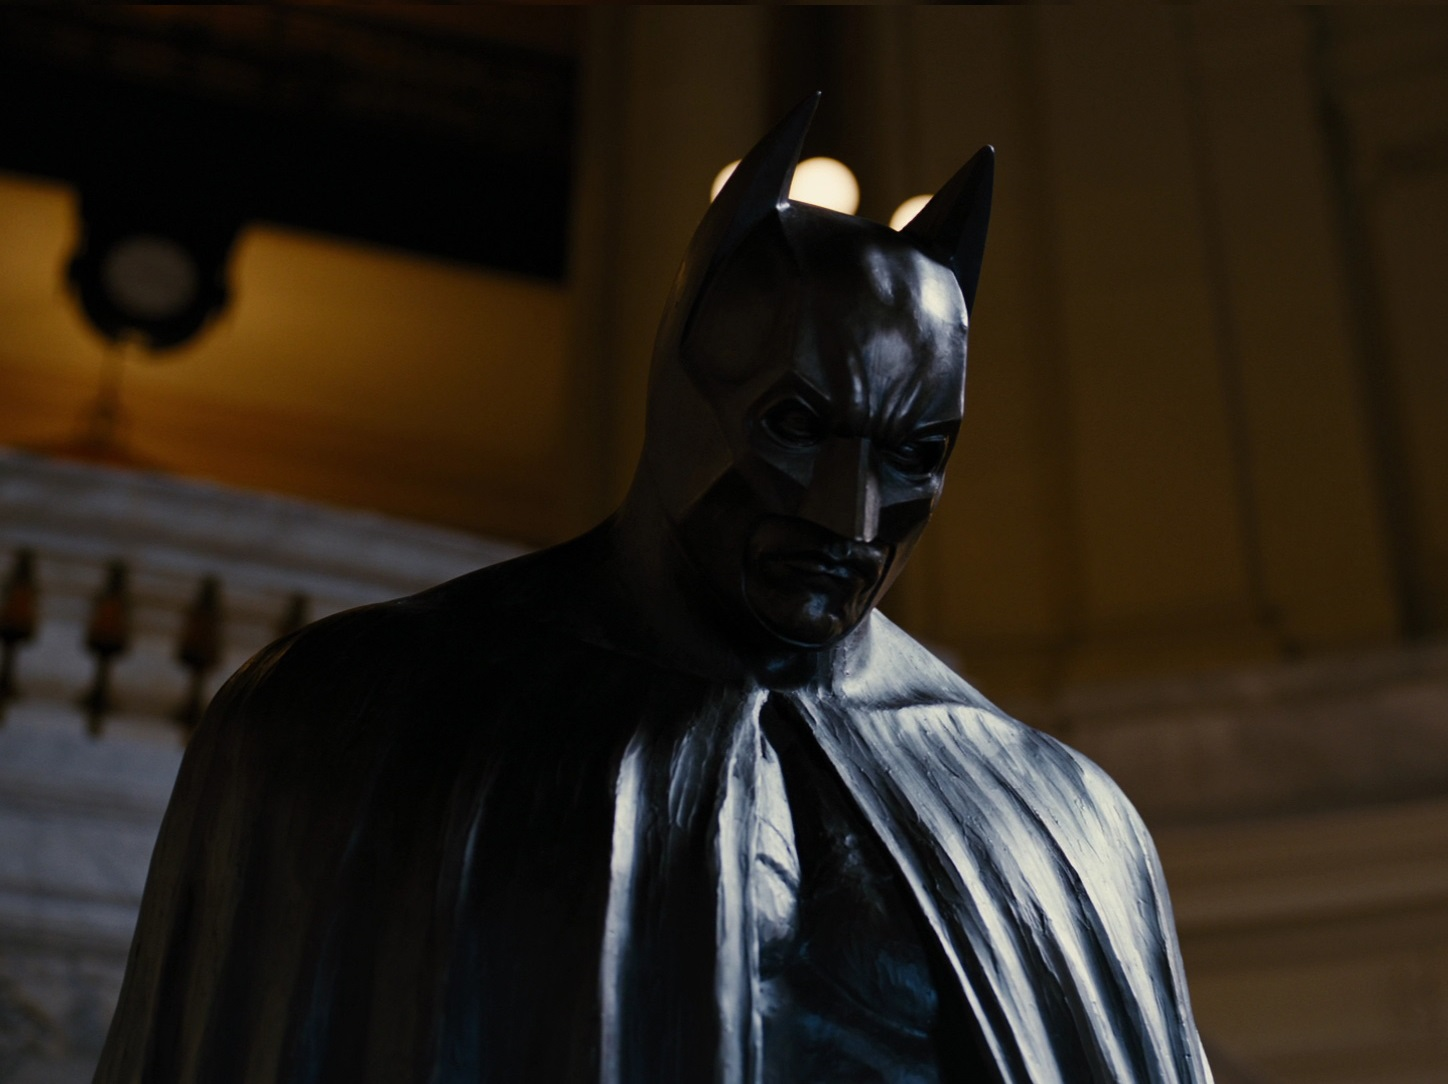 Revisiting The End Of Batman In The Dark Knight Rises